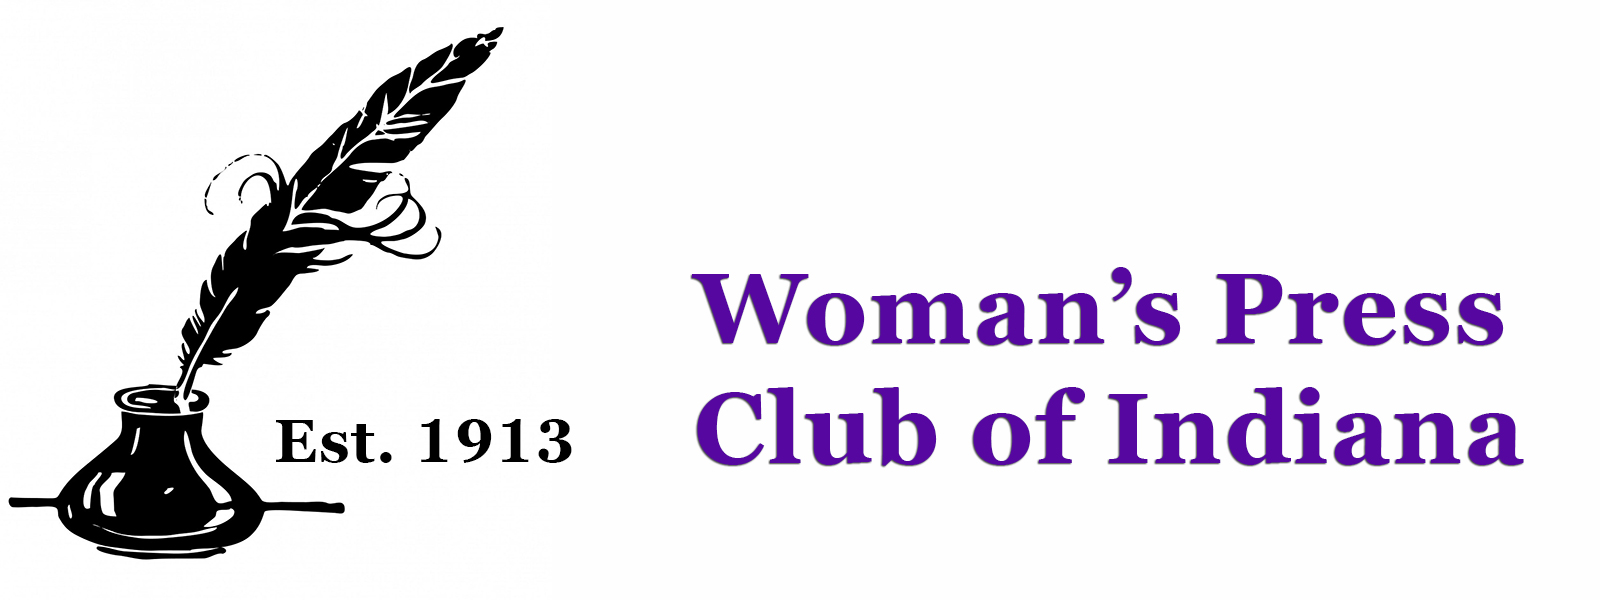 Woman's Press Club of Indiana